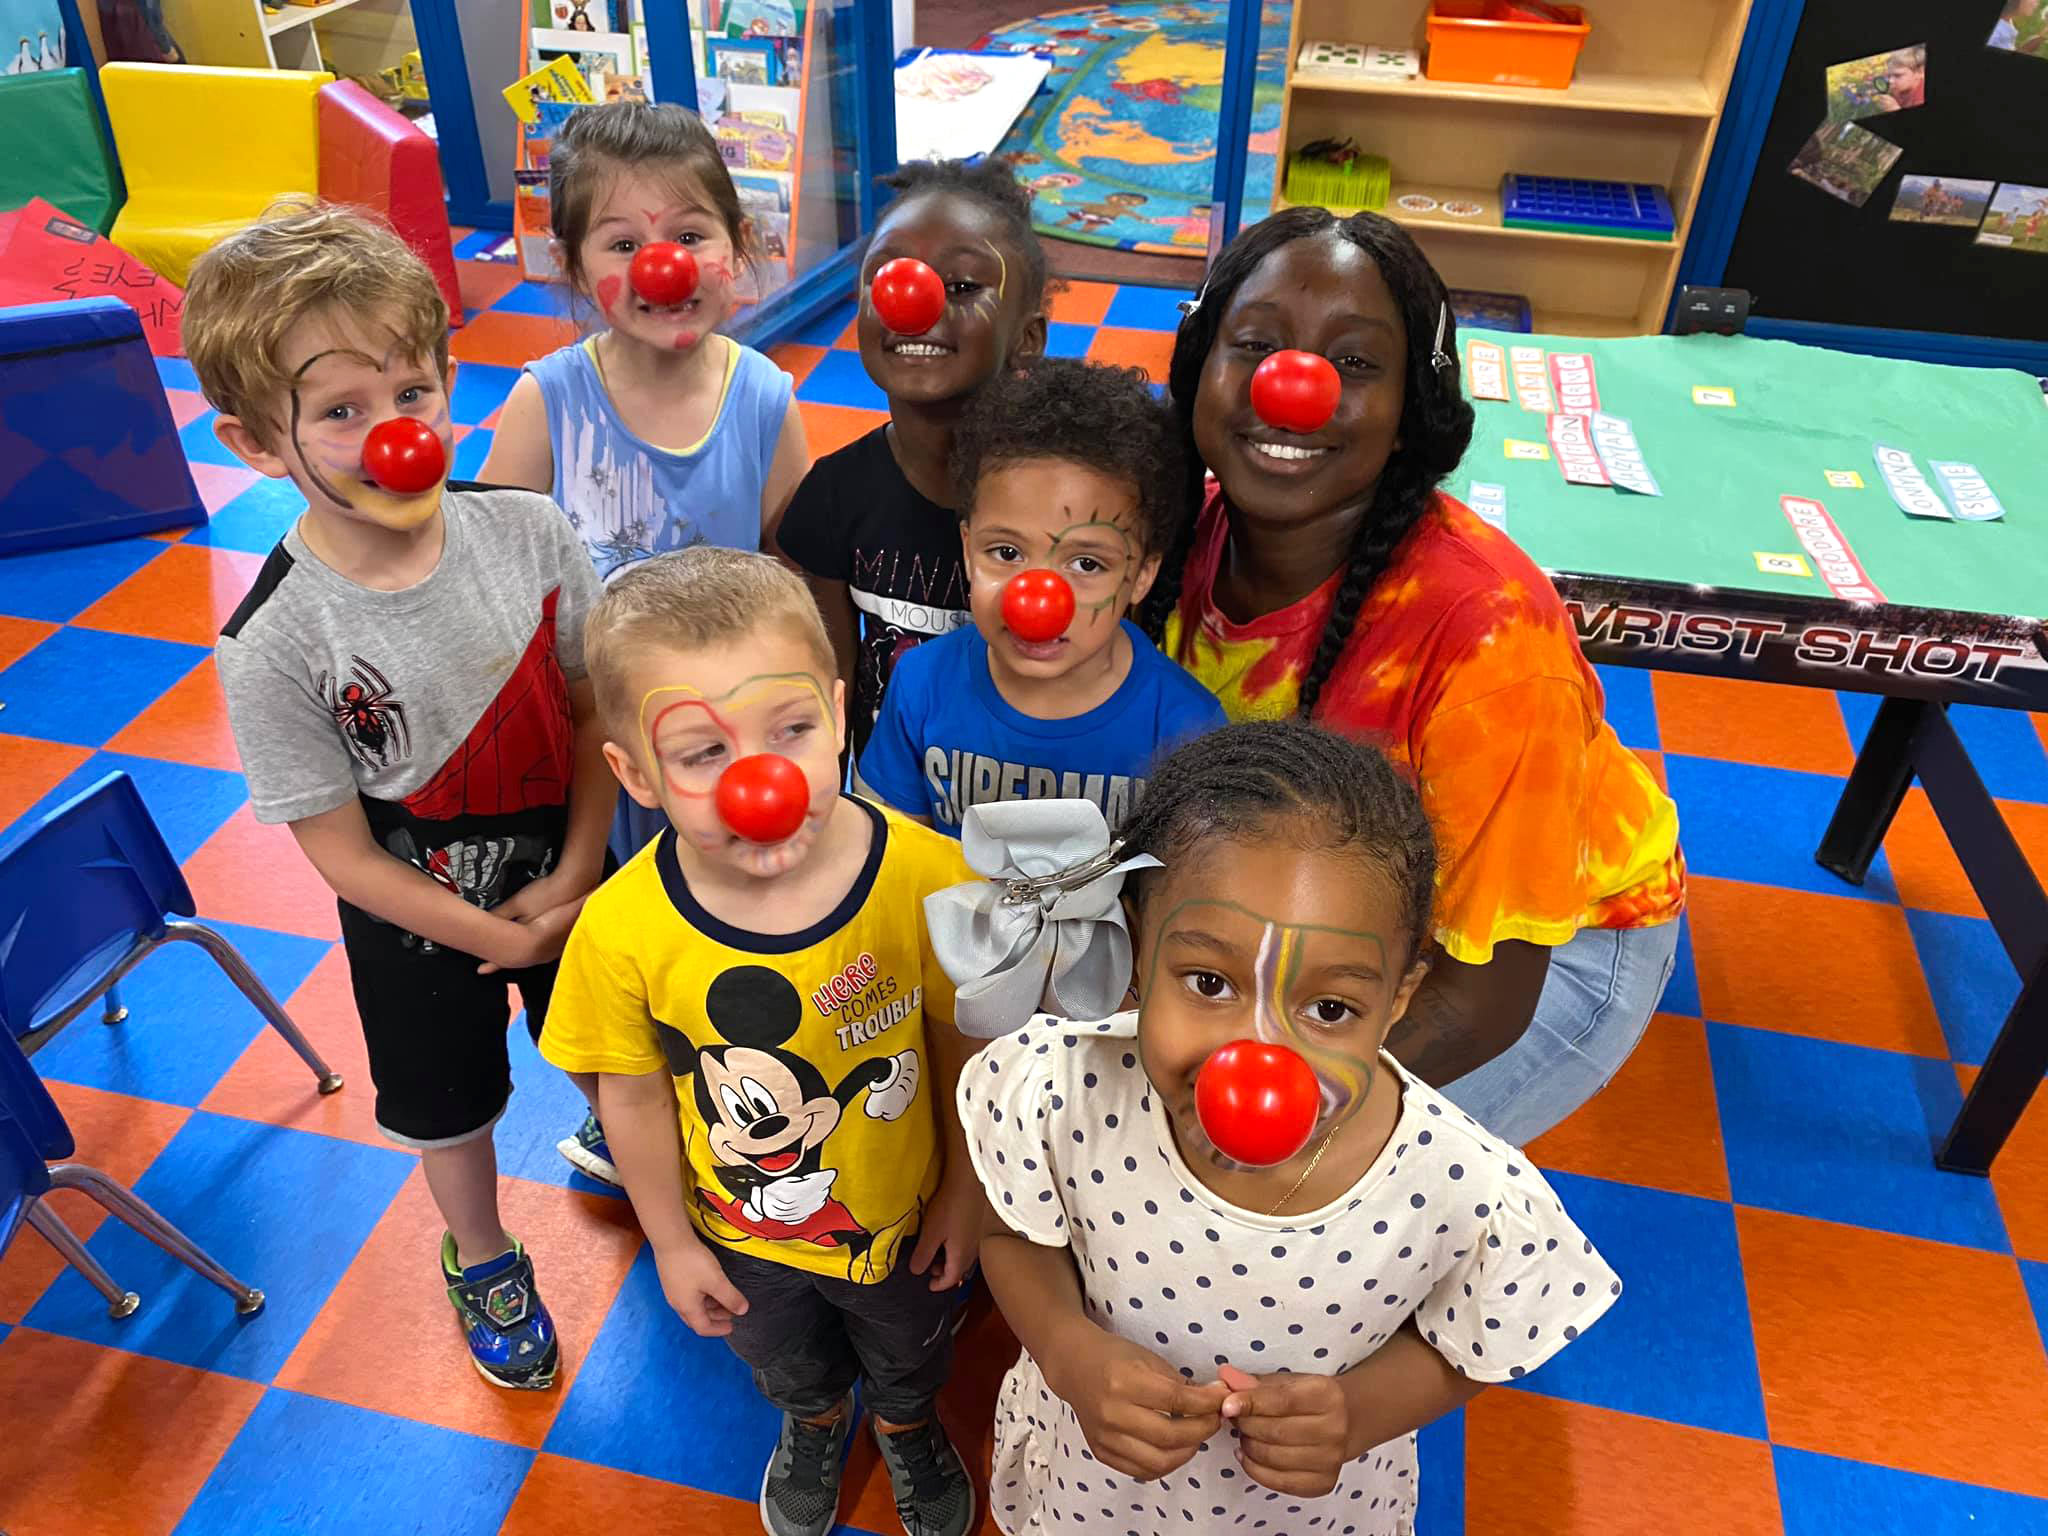 Children with red clown nose at Robin's Nest Learning Center in Carbondale, Illinois